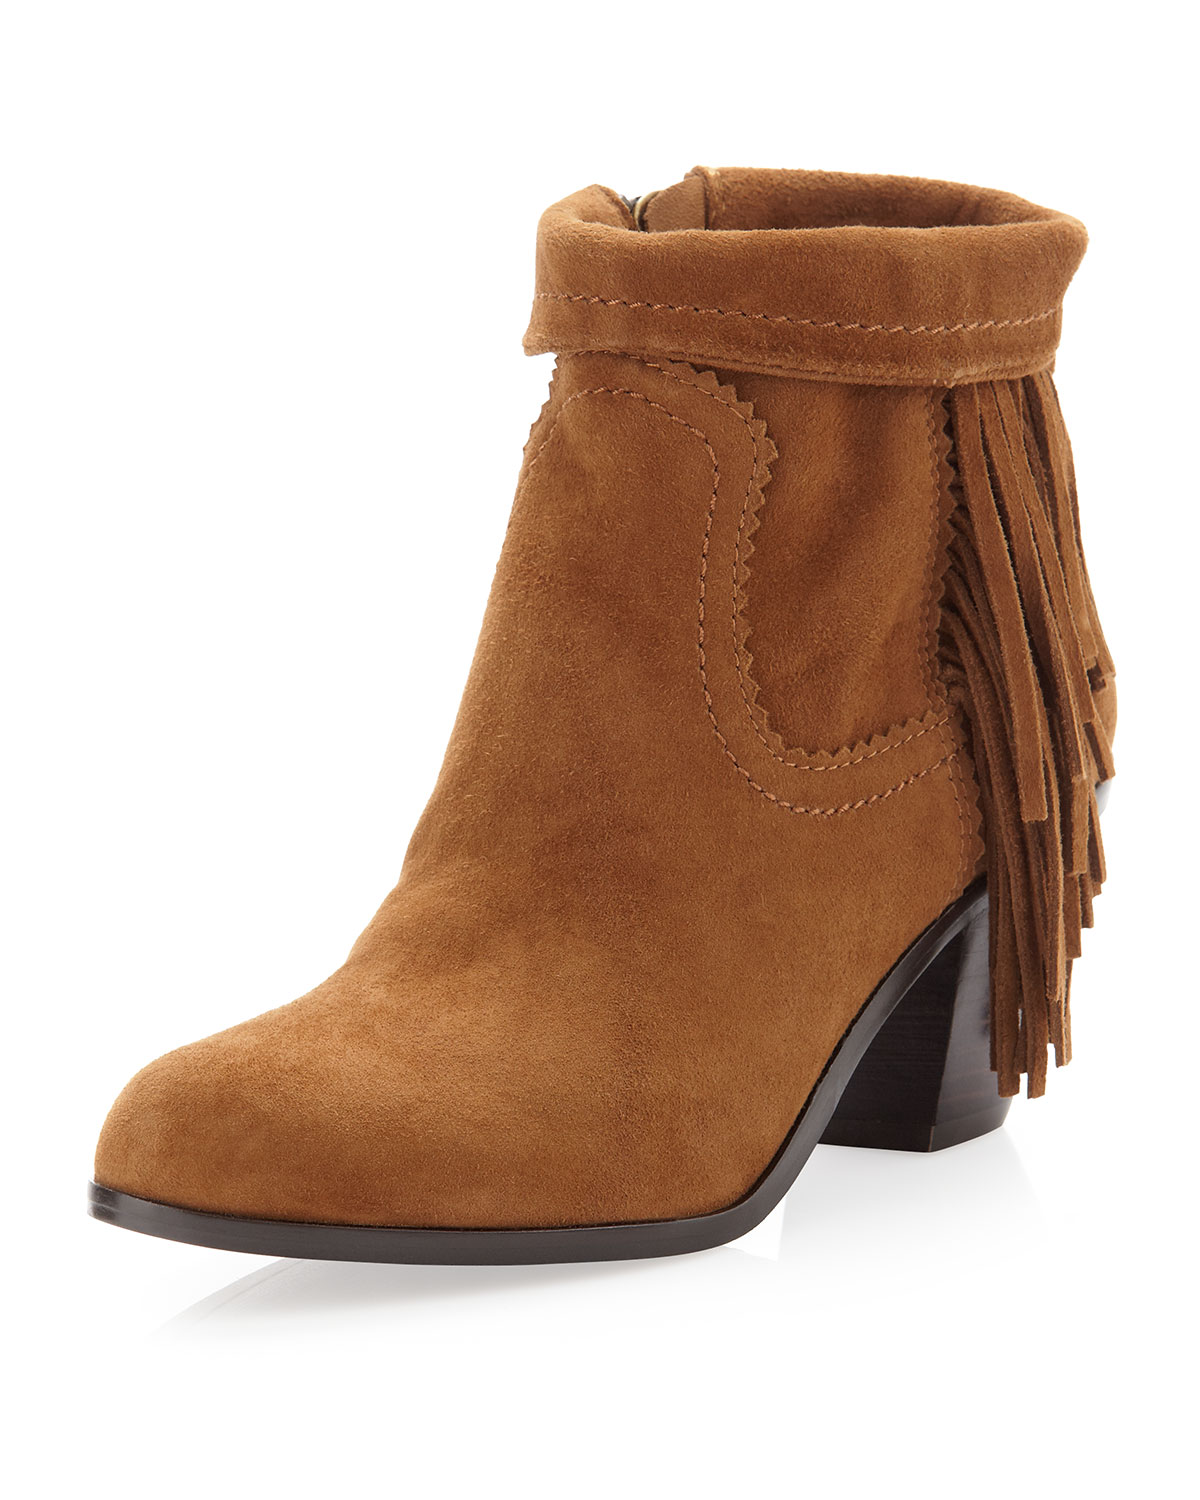 5c291869e6af Lyst - Sam Edelman Louie Sidefringe Ankle Boot Cocoa in Brown